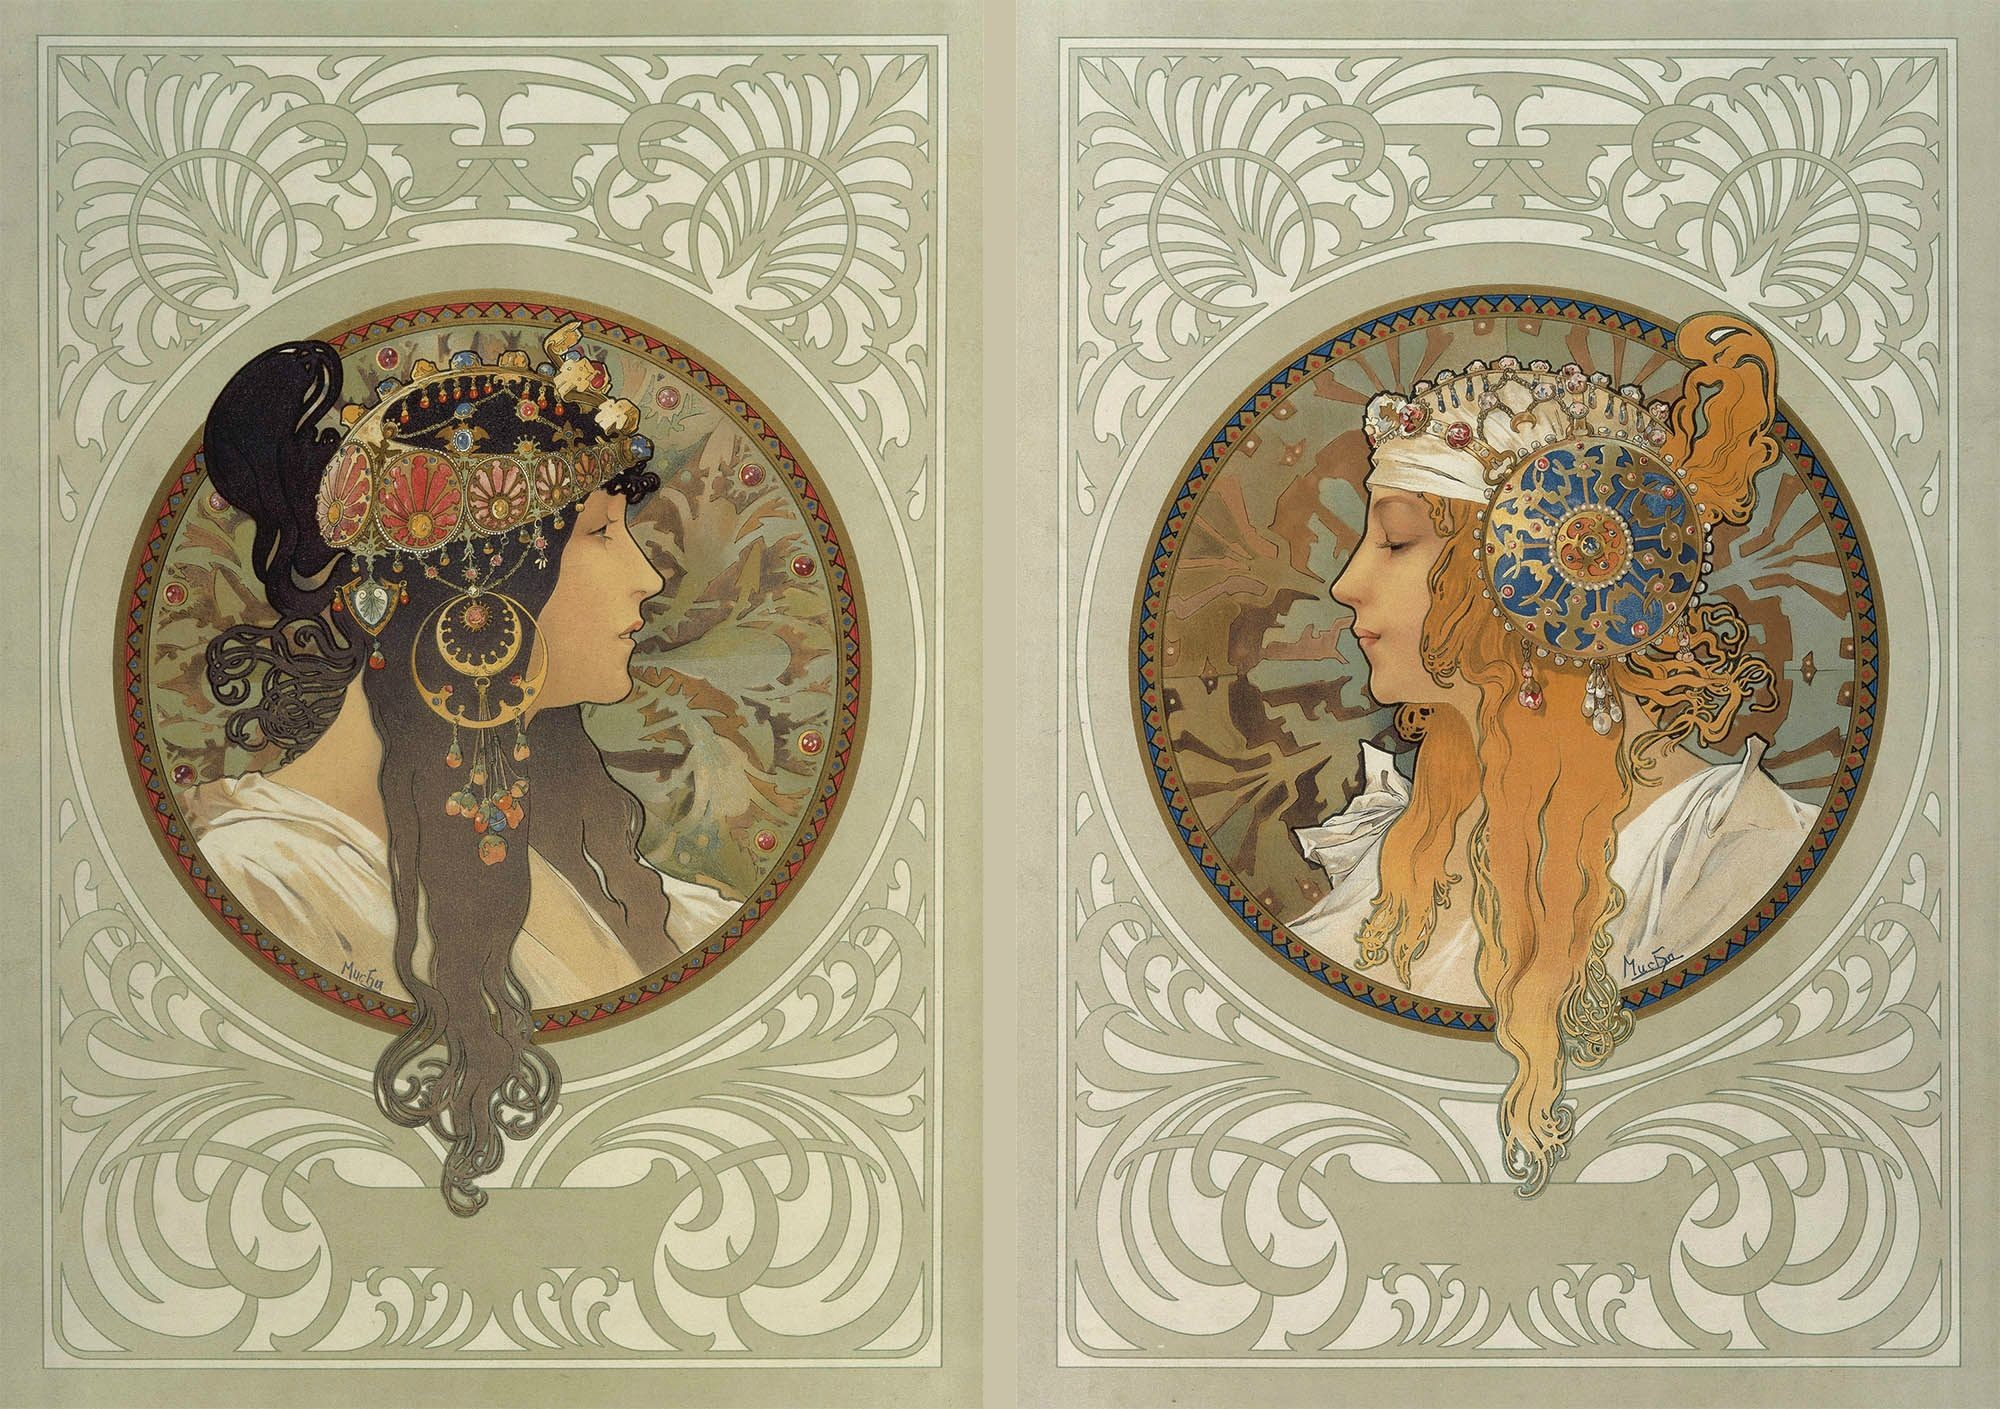 2000x1409 Alphonse Mucha Wallpapers Widescreen